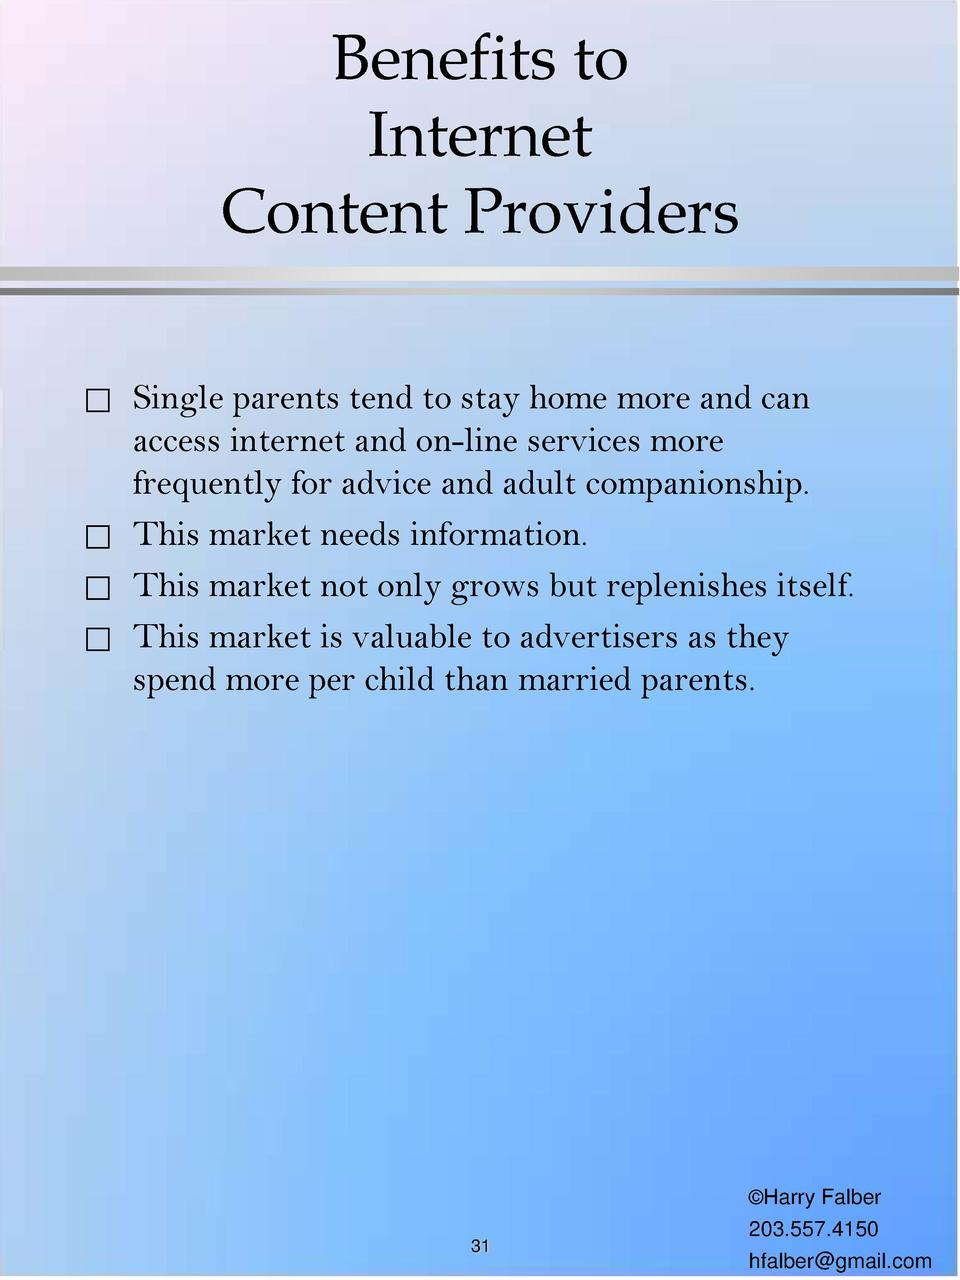 Benefits to Internet Content Providers                   Single parents tend to stay home more and can access internet and...